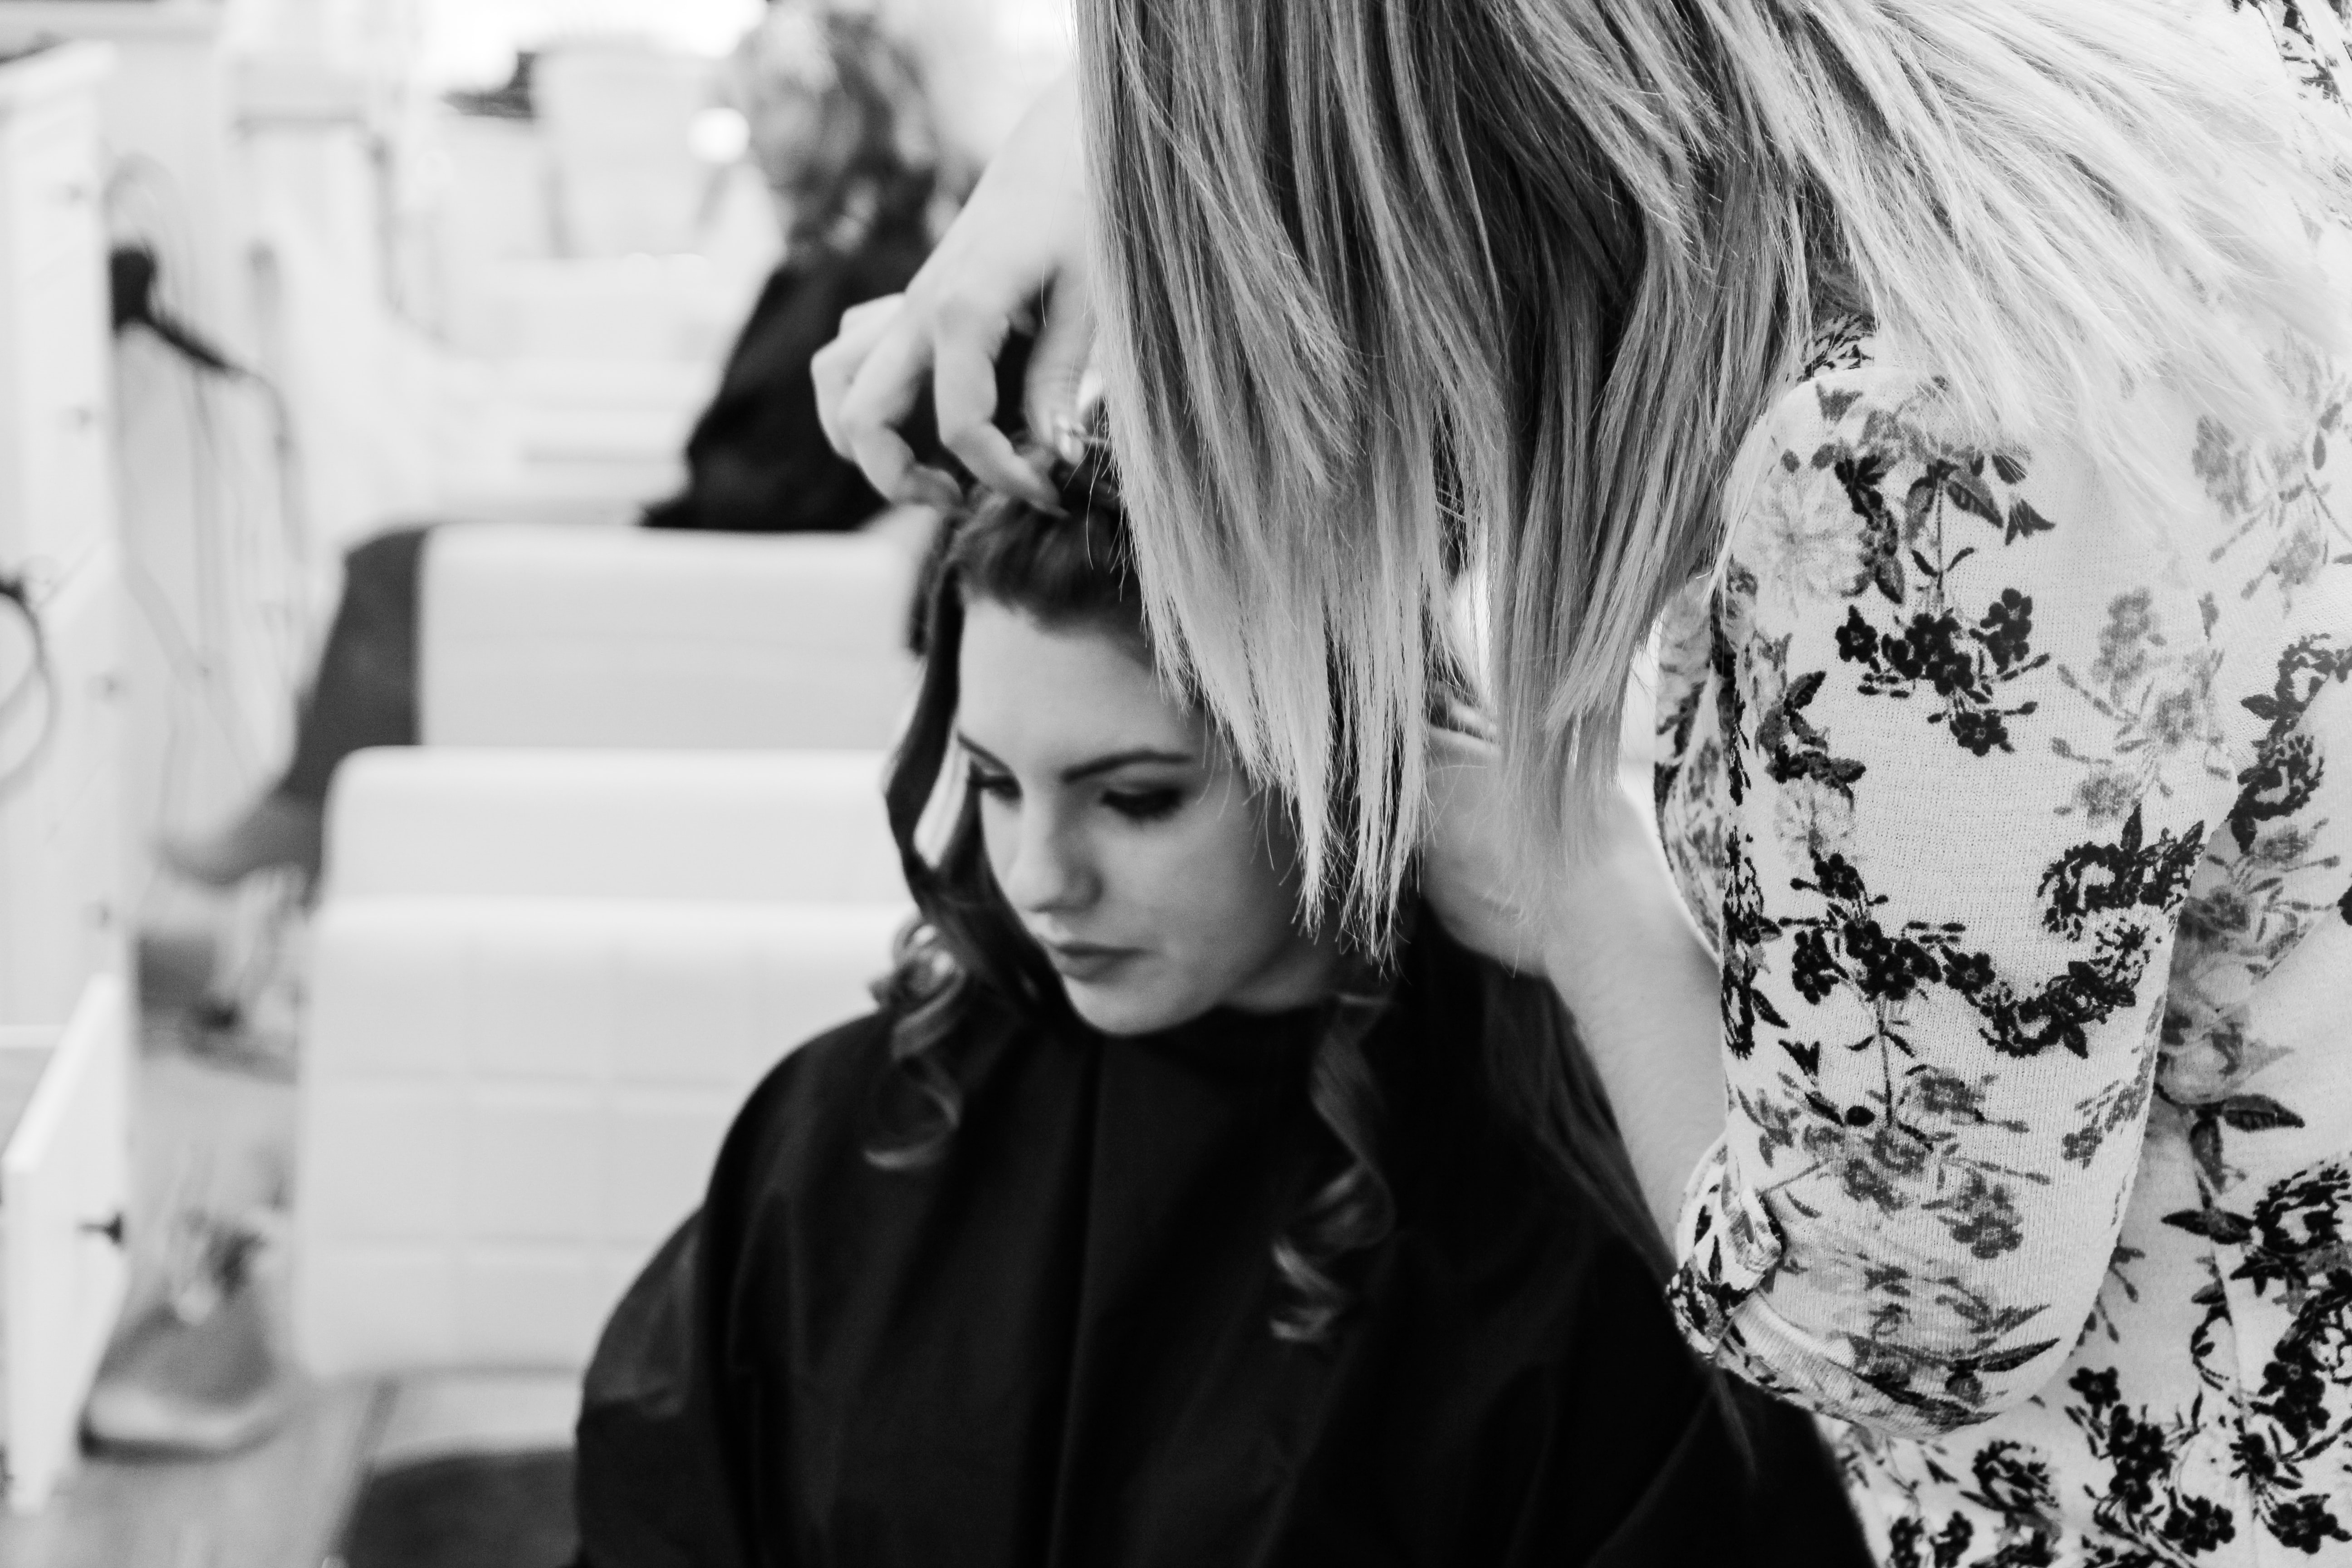 Woman gets her hair done by a stylist in a salon